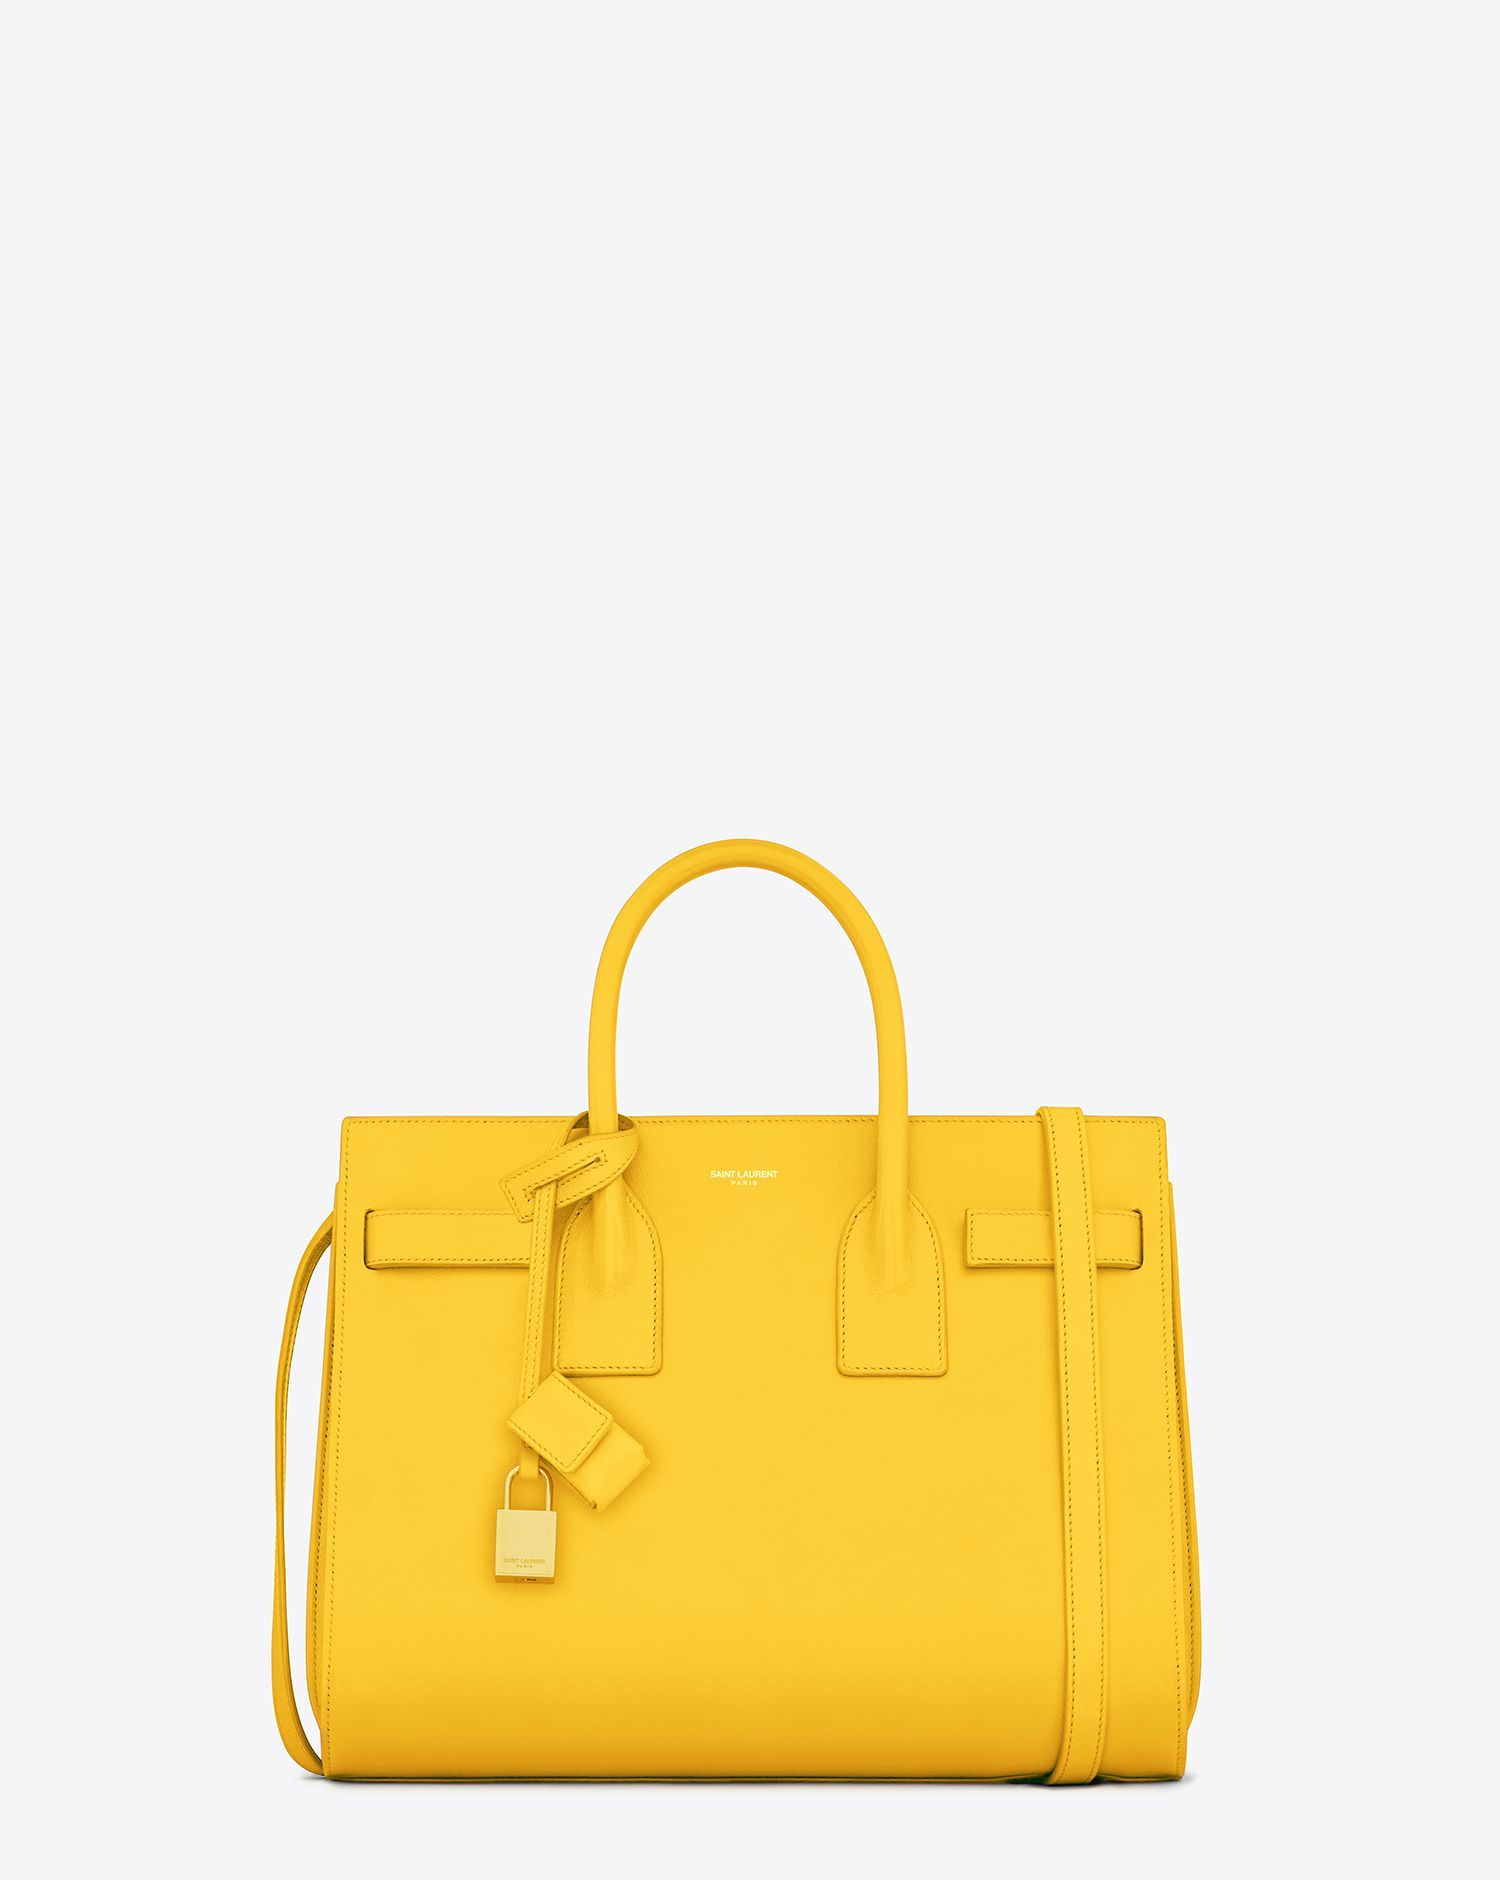 Saint Lau Classic Small Sac De Jour Bag In Yellow Leather Ysl Photos